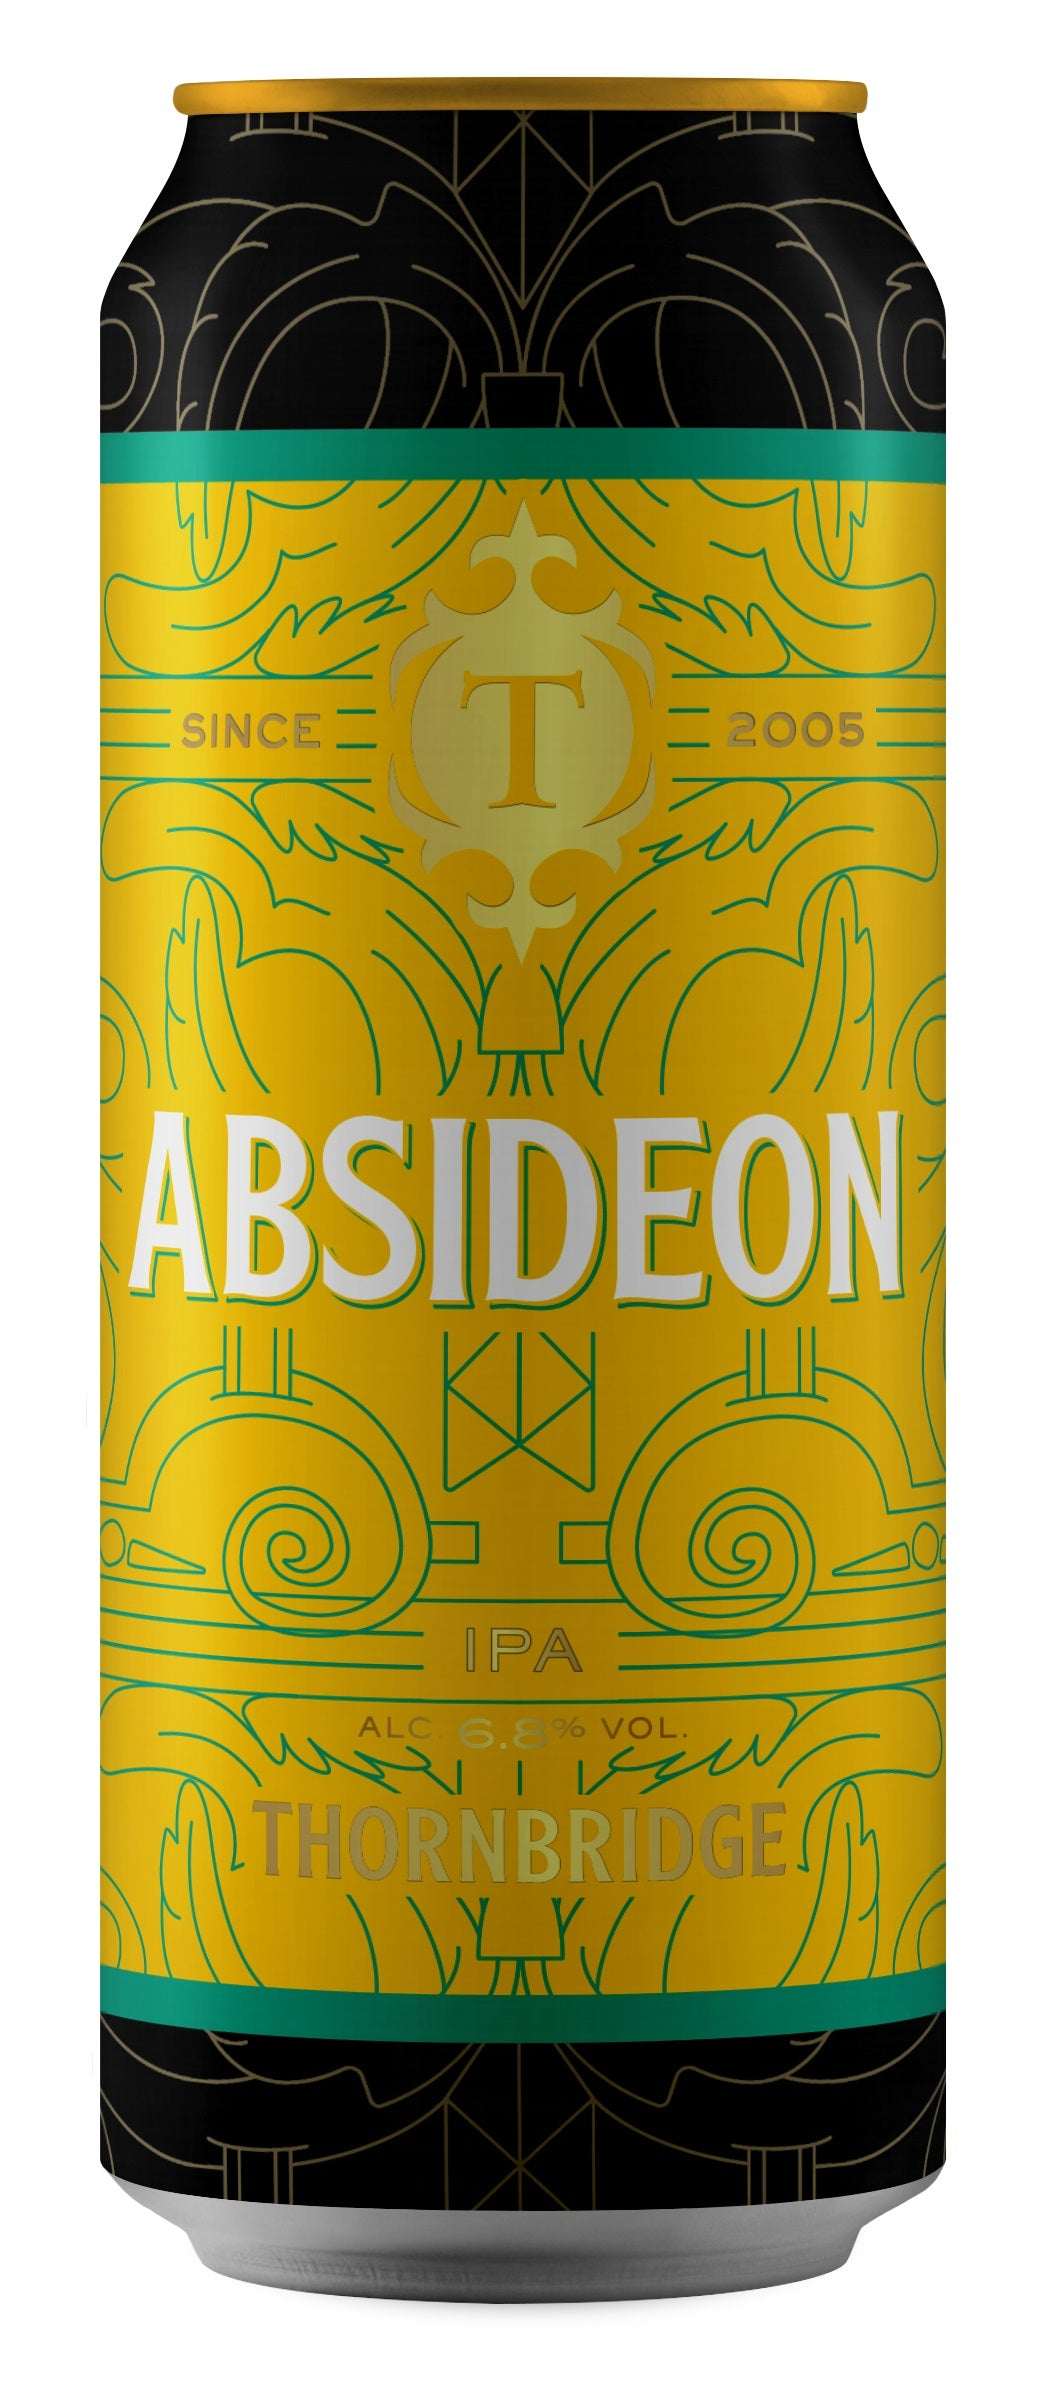 Thornbridge Absideon IPA